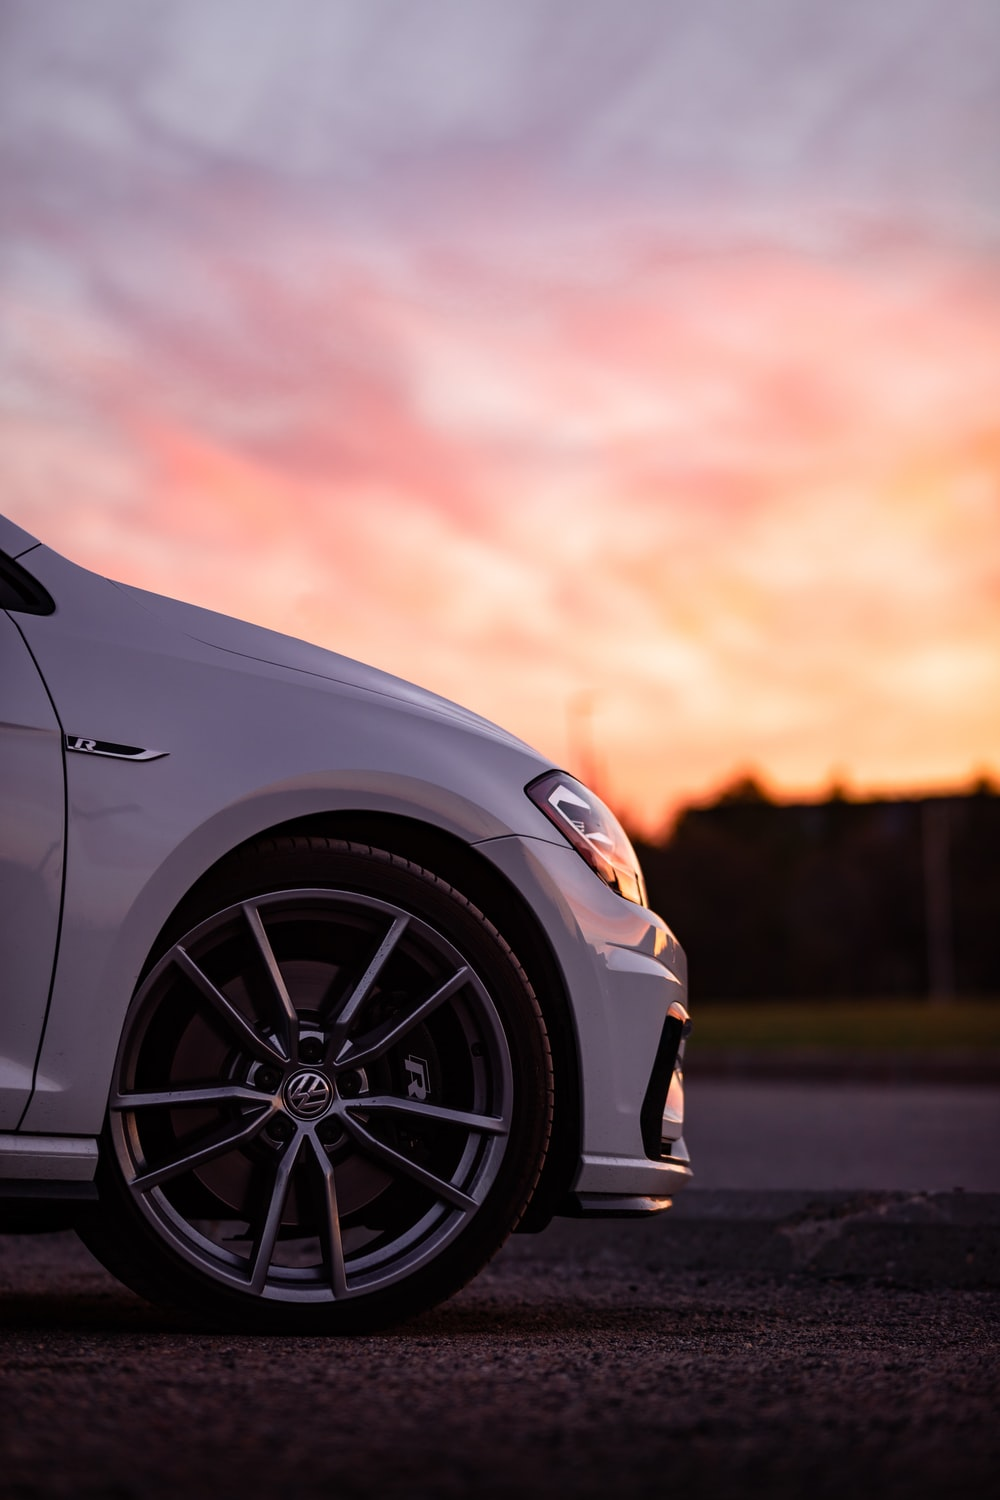 white car on road during sunset